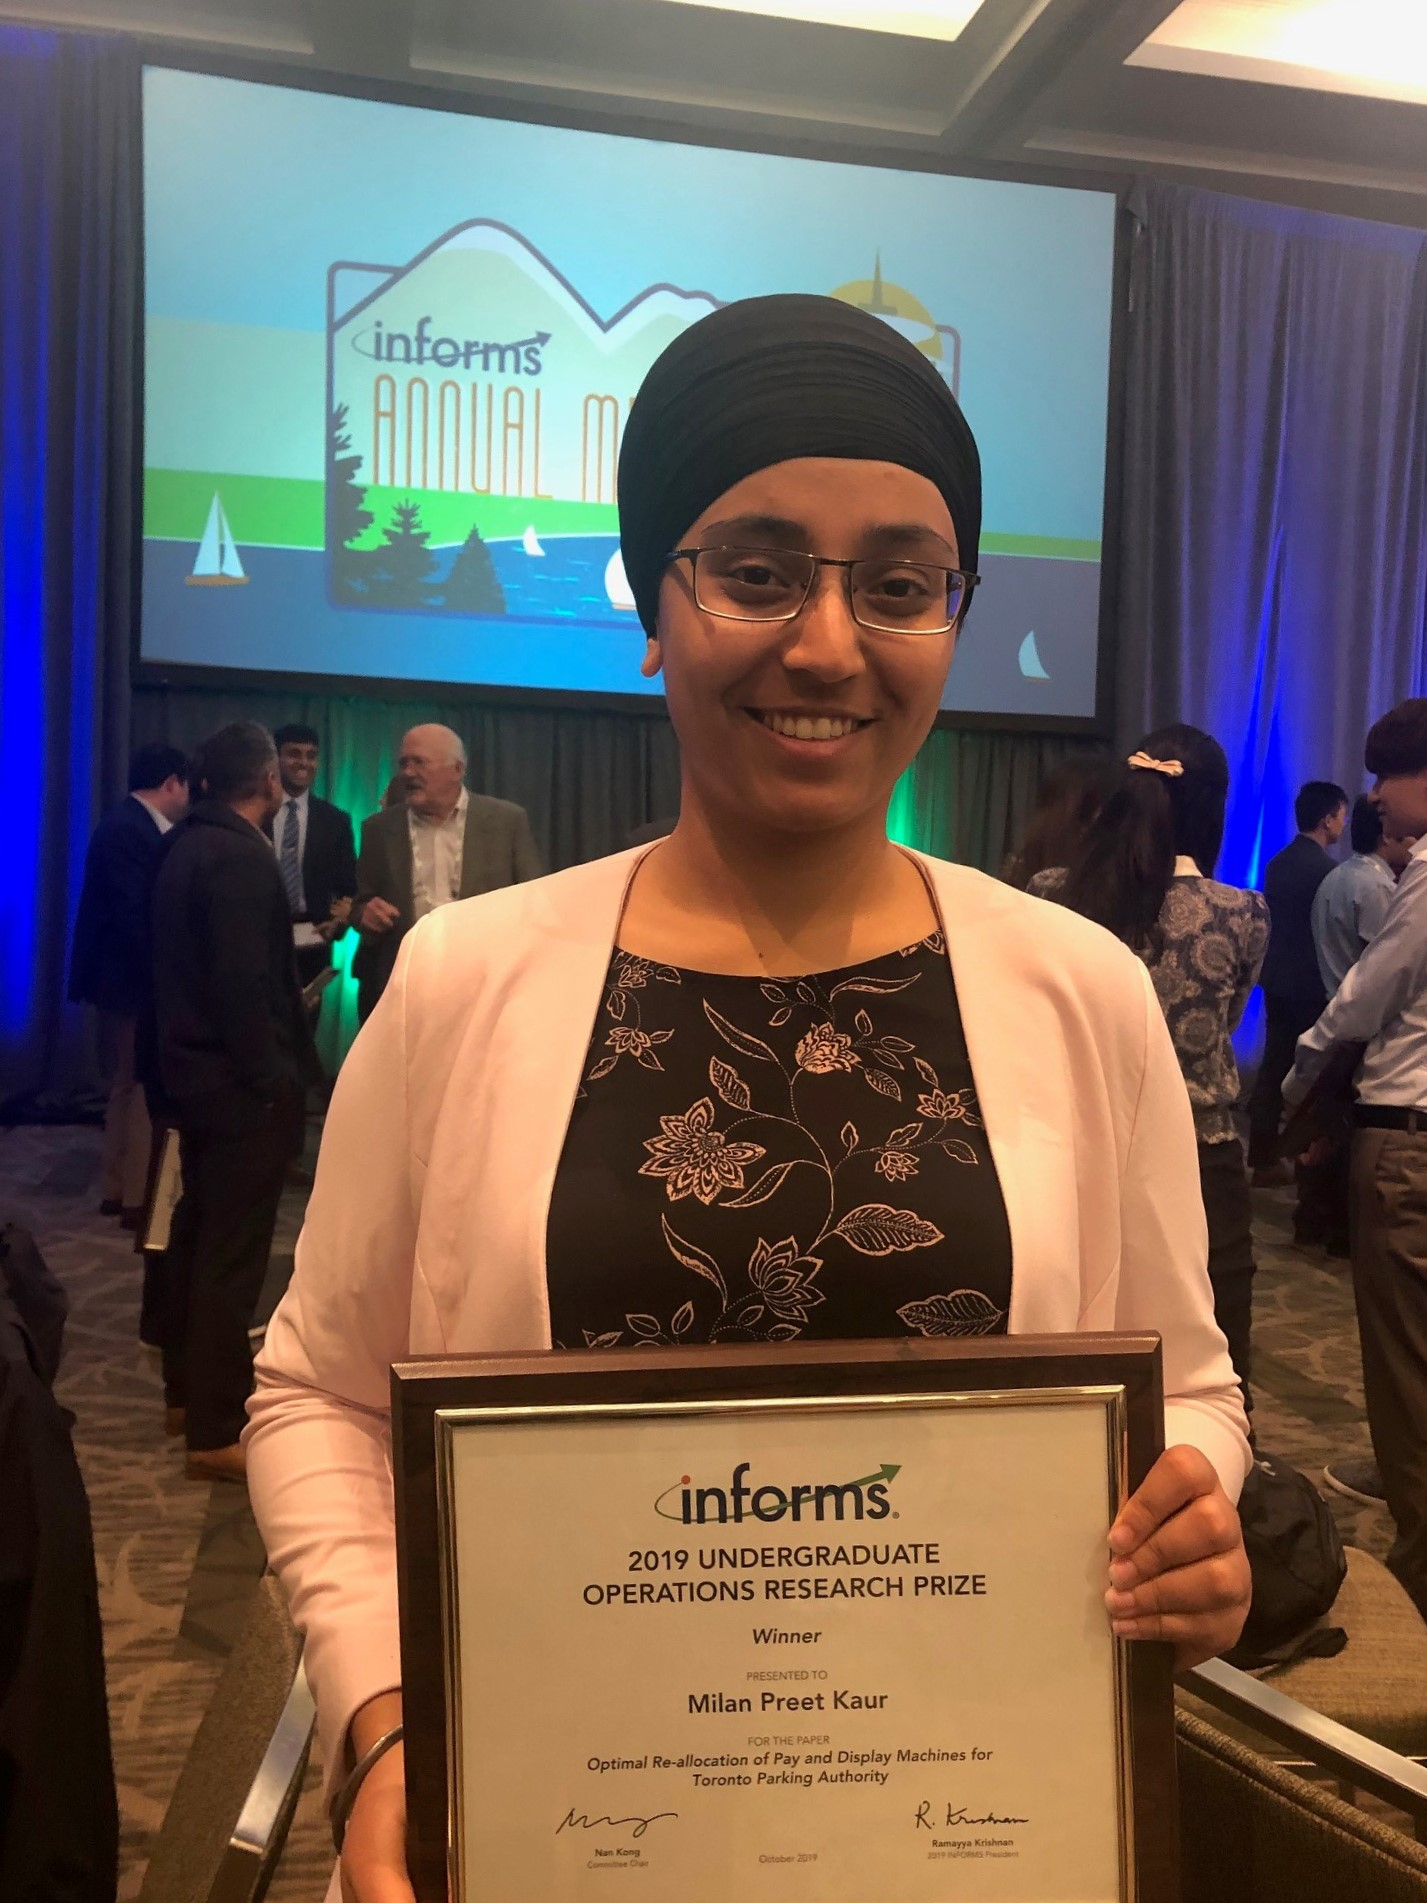 Milan Preet Kaur was awarded first place at the INFORMS Undergraduate Operations Research Prize Competition for her team's 2019